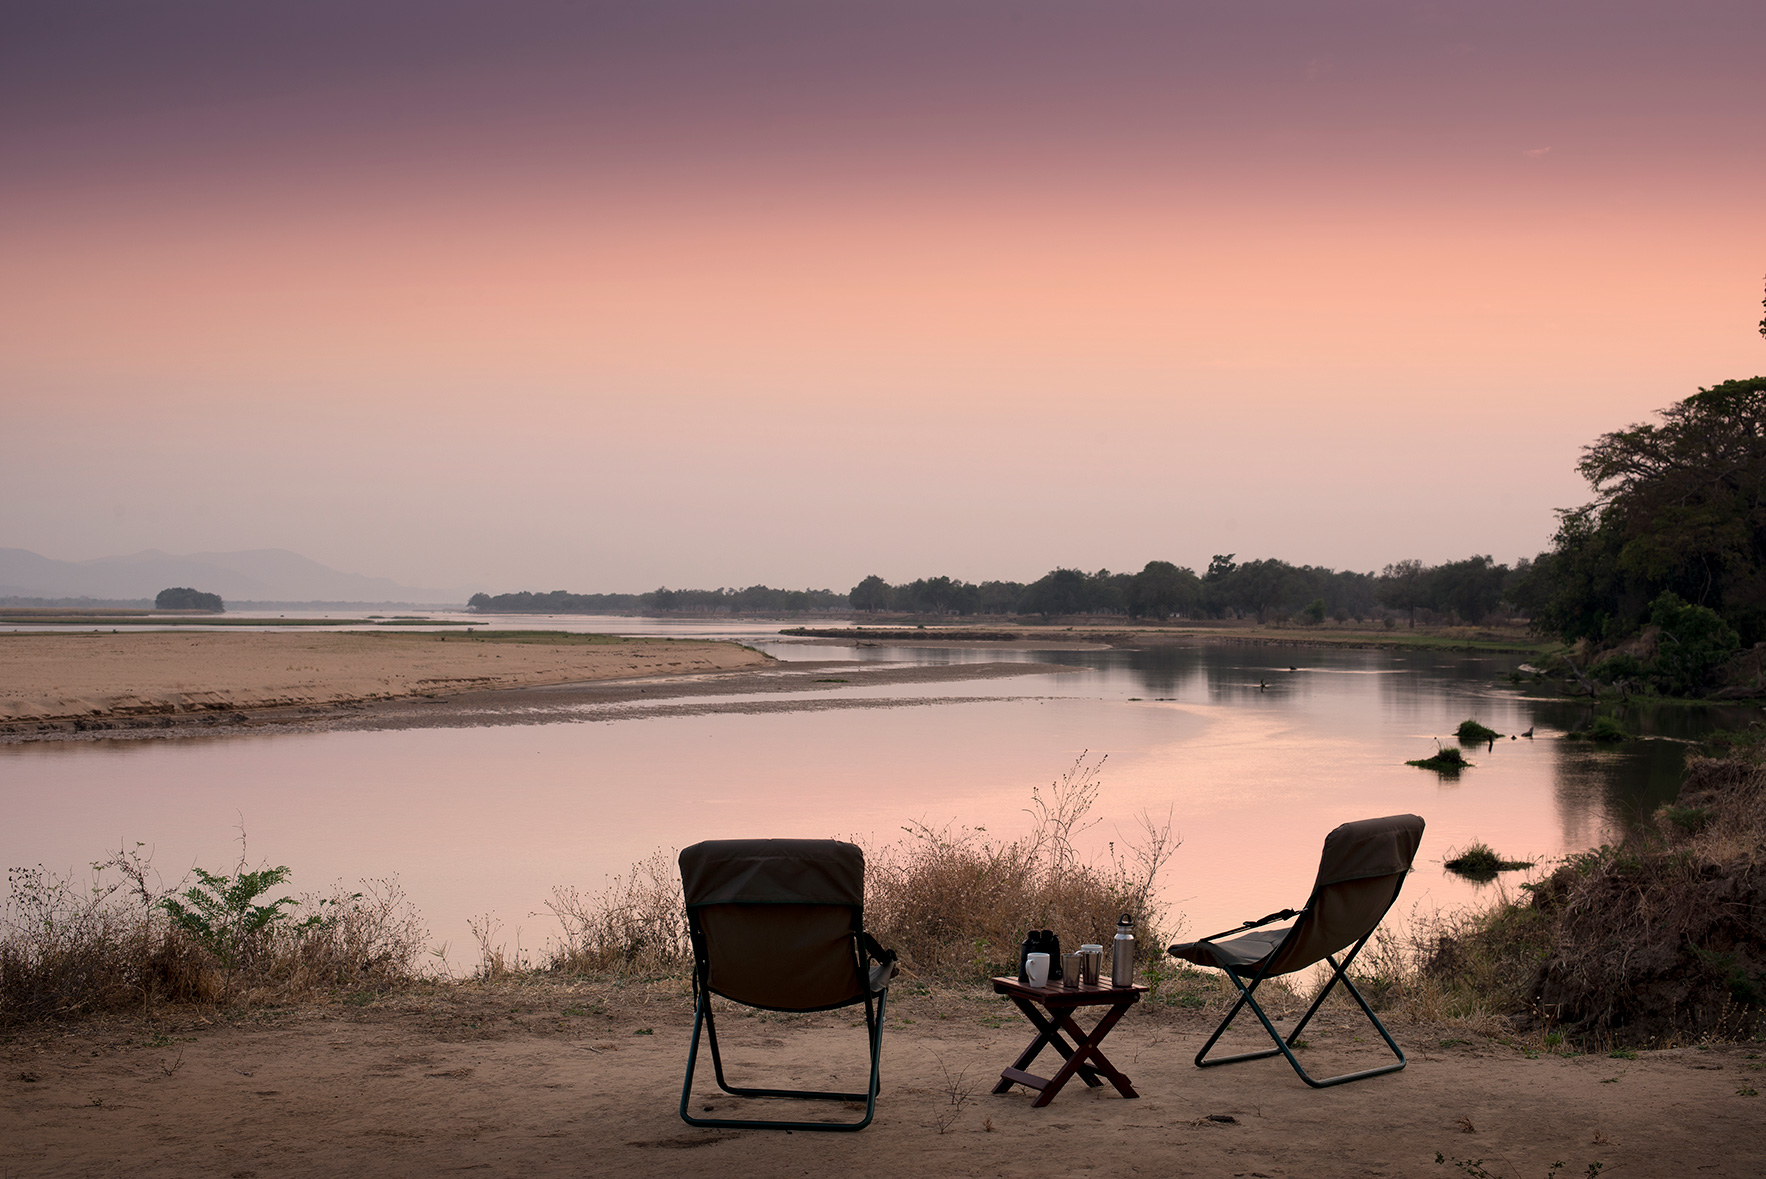 Zambezi-Expeditions-Mana-Pools-National-Park-Zimbabwe-Safari-Tented-Camp-African-Bush-Camps-(10)-View-from-tent